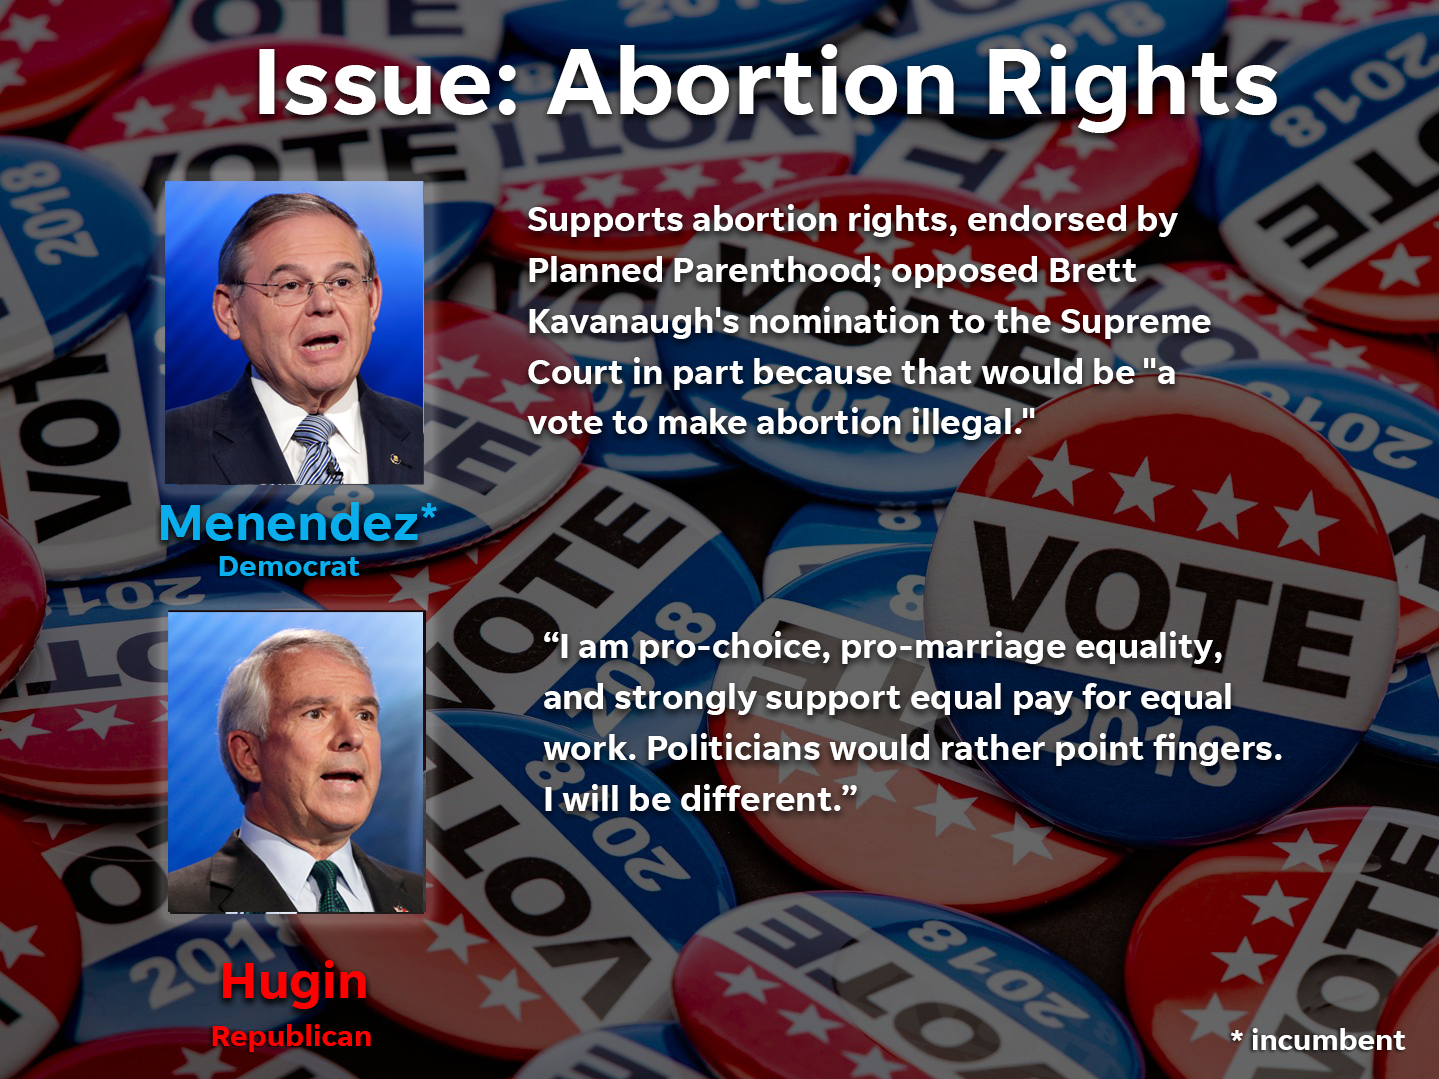 This is each candidates stance on abortion rights.